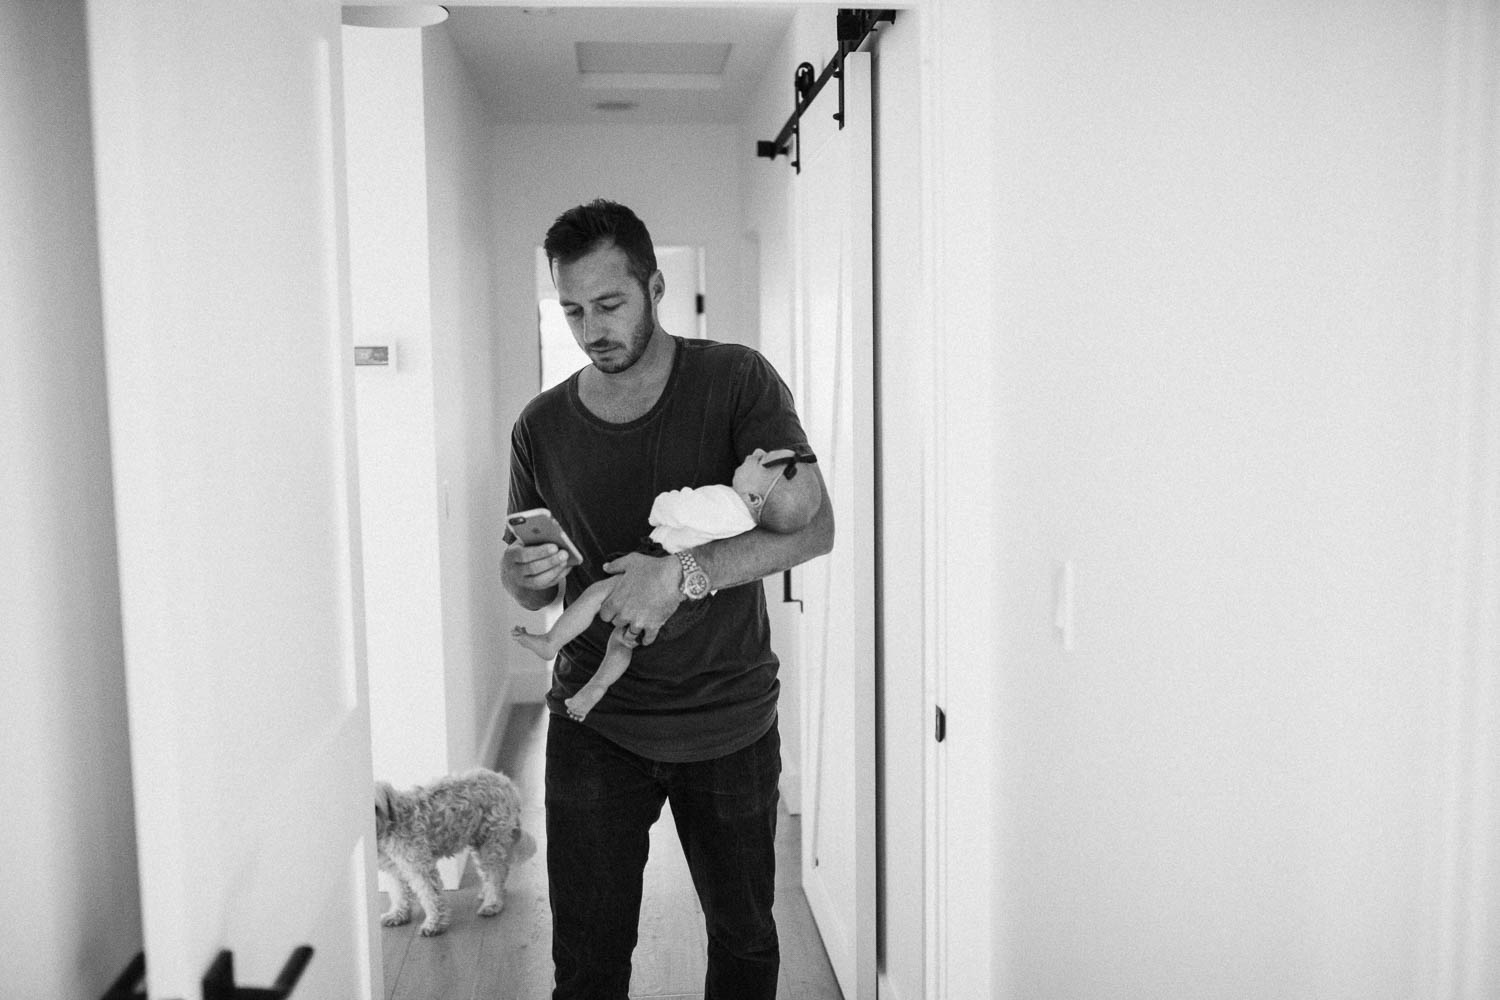 candid-black-and-white-photo-of-father-carrying-baby-in-hallway-of-home-encinita-california